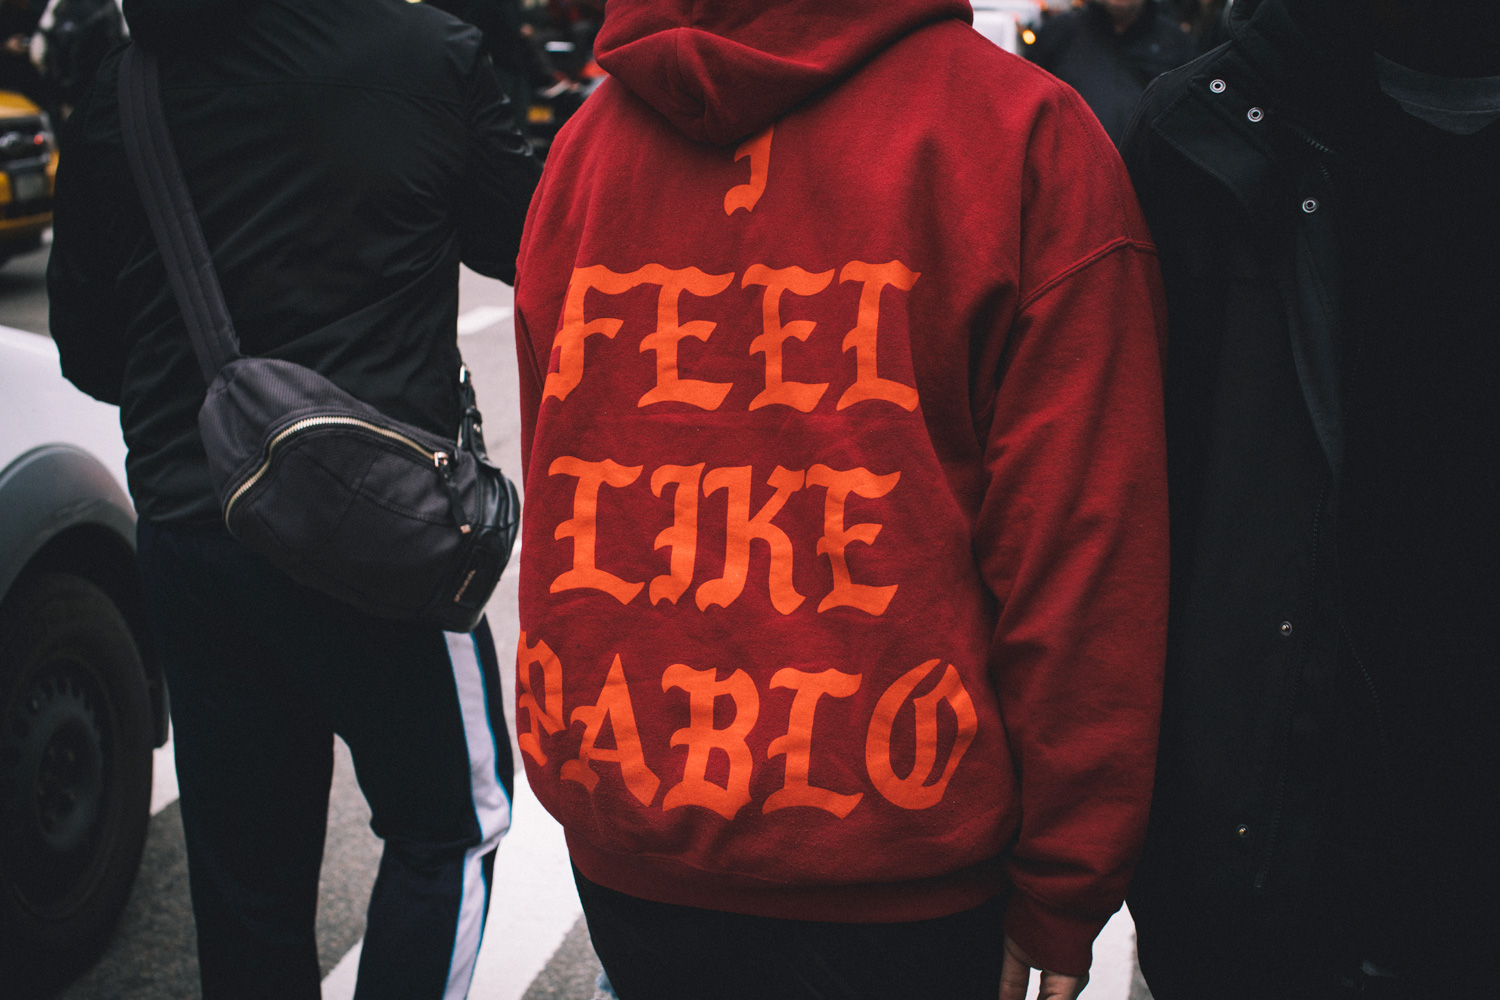 Kanye-West-Life-of-the-Pablo-Pop-up-review-11.jpg